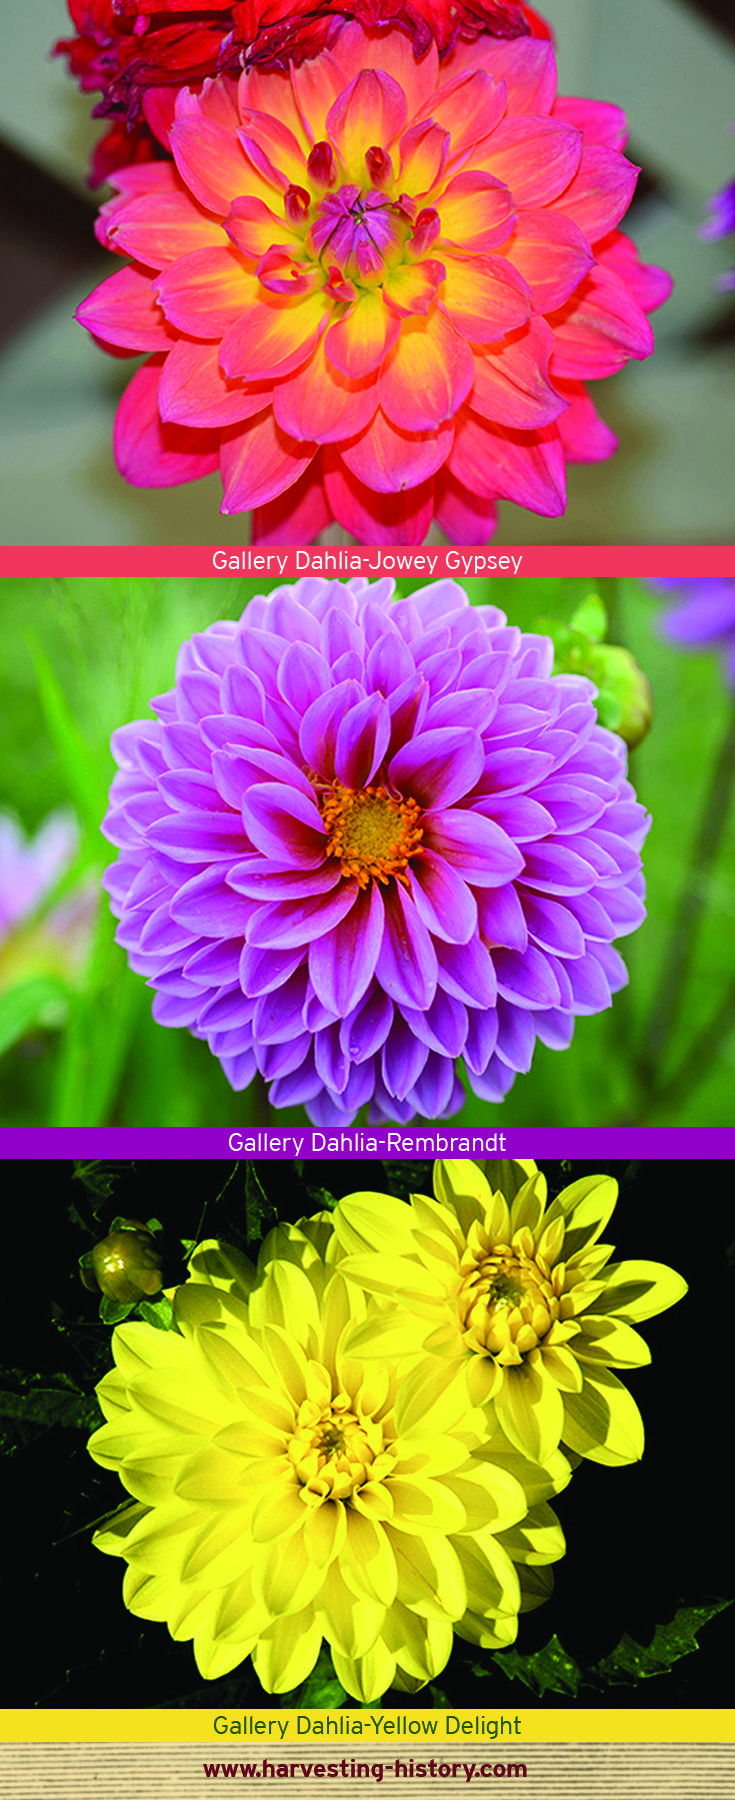 Gallery Dahlias Are The Smallest Of The Dahlia Cultivars With Most Plants Under 2 Feet Flowers Are Usually 2 Inches In Diameter B Border Plants Dahlia Plants